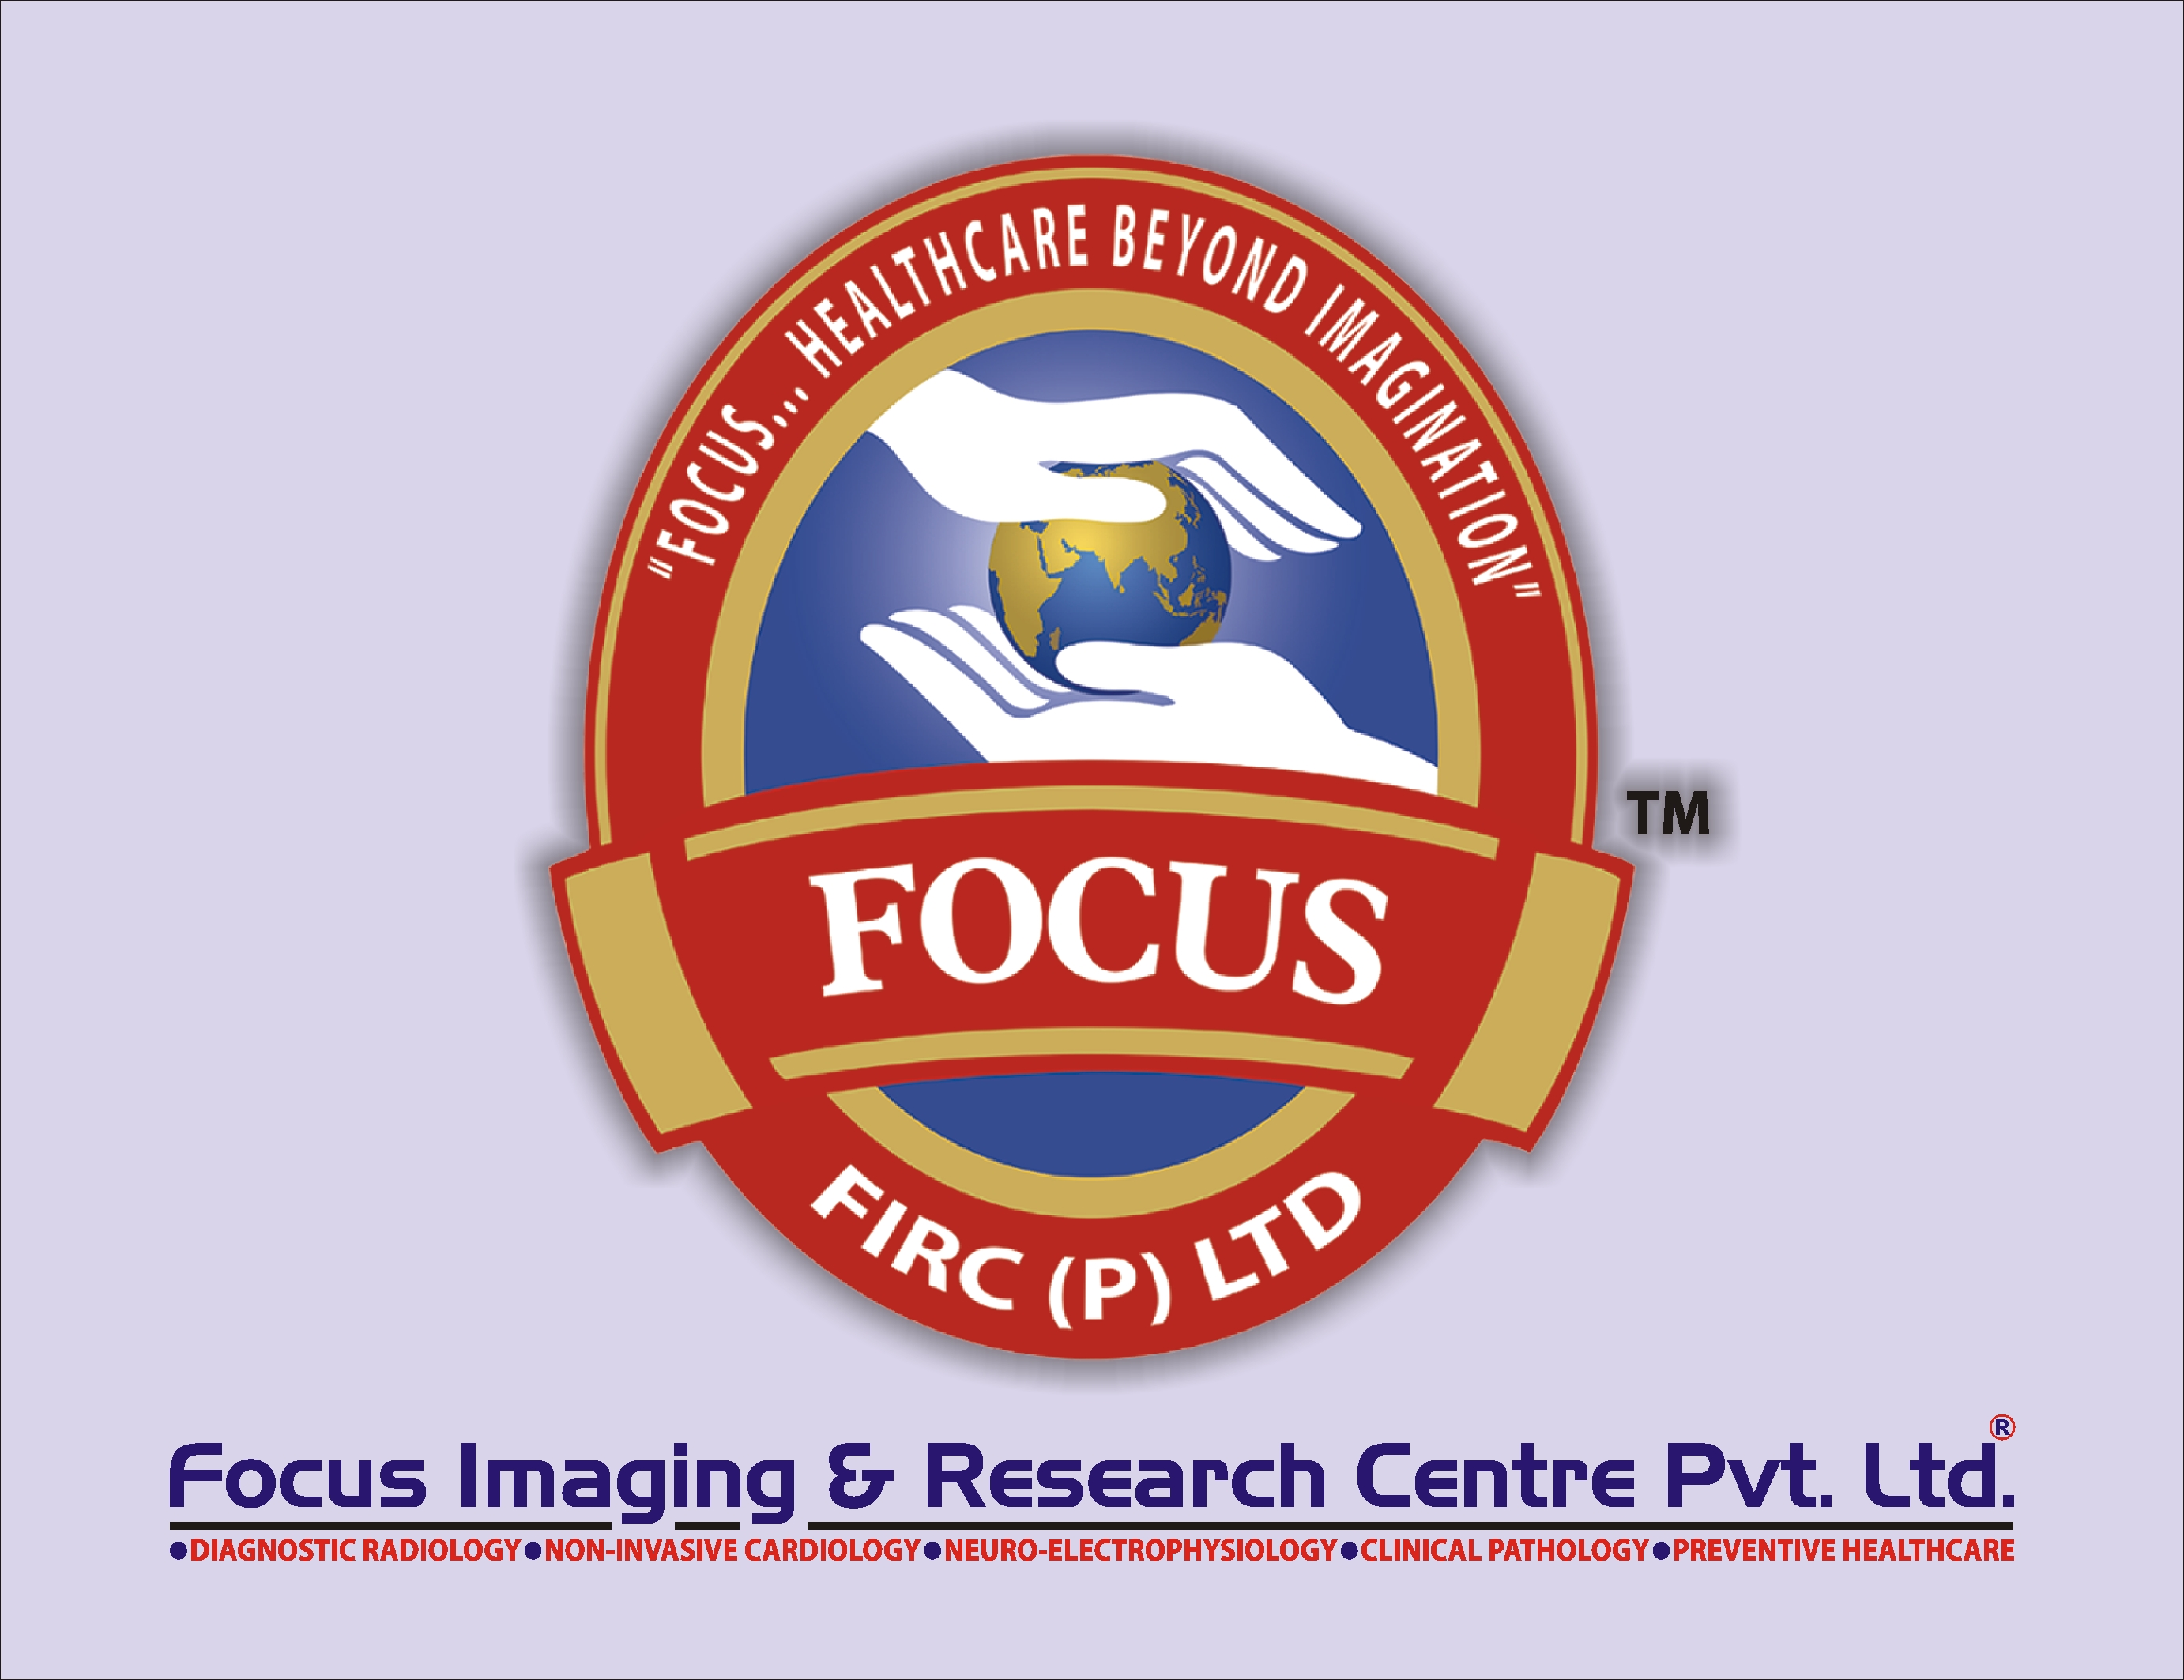 Focus imaging and research center